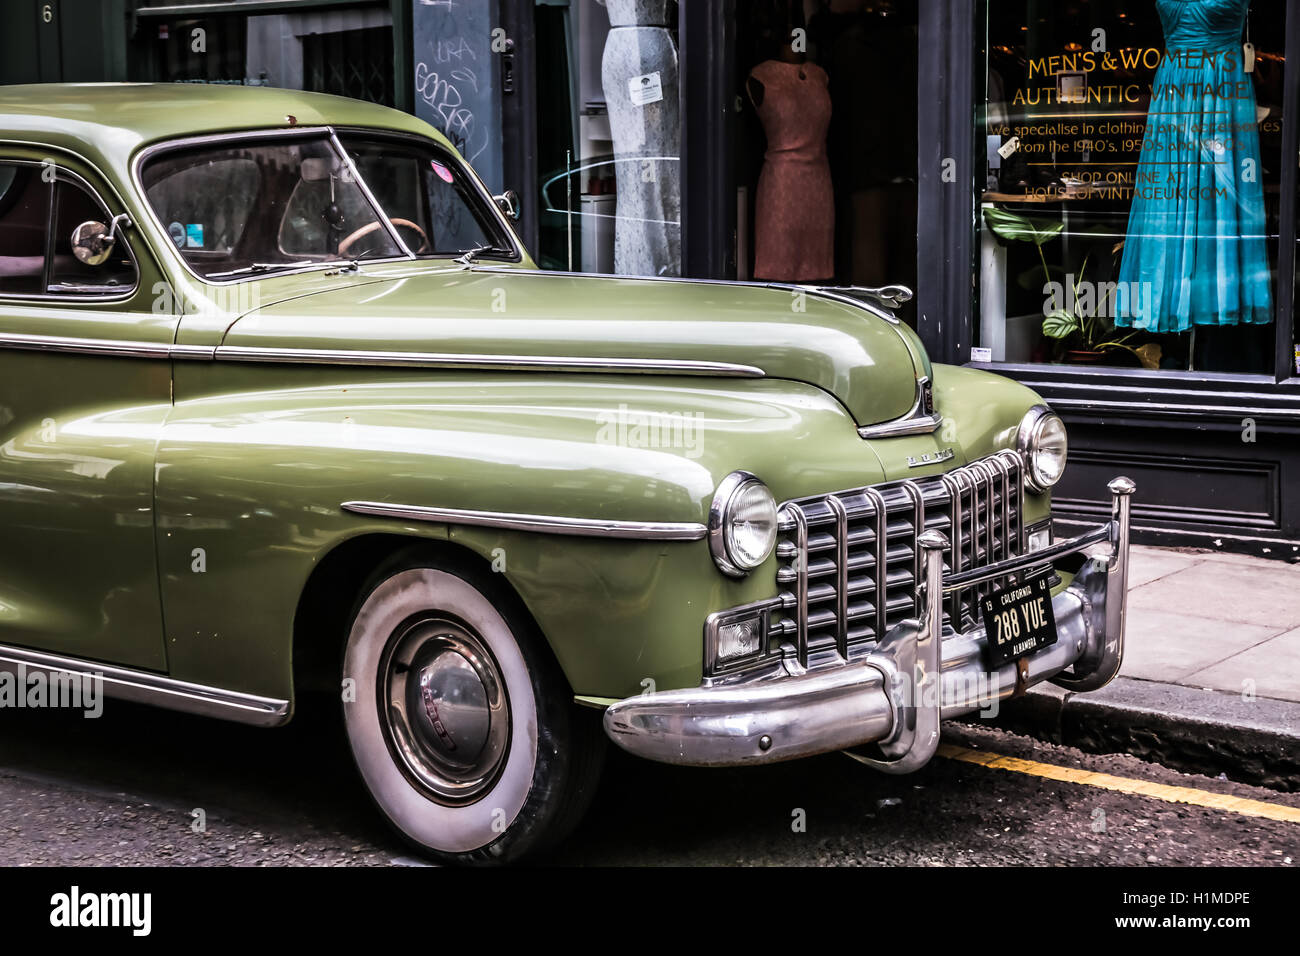 960fd0ac286bc Classic Green Car in Front of Vintage Shop London Stock Photo ...